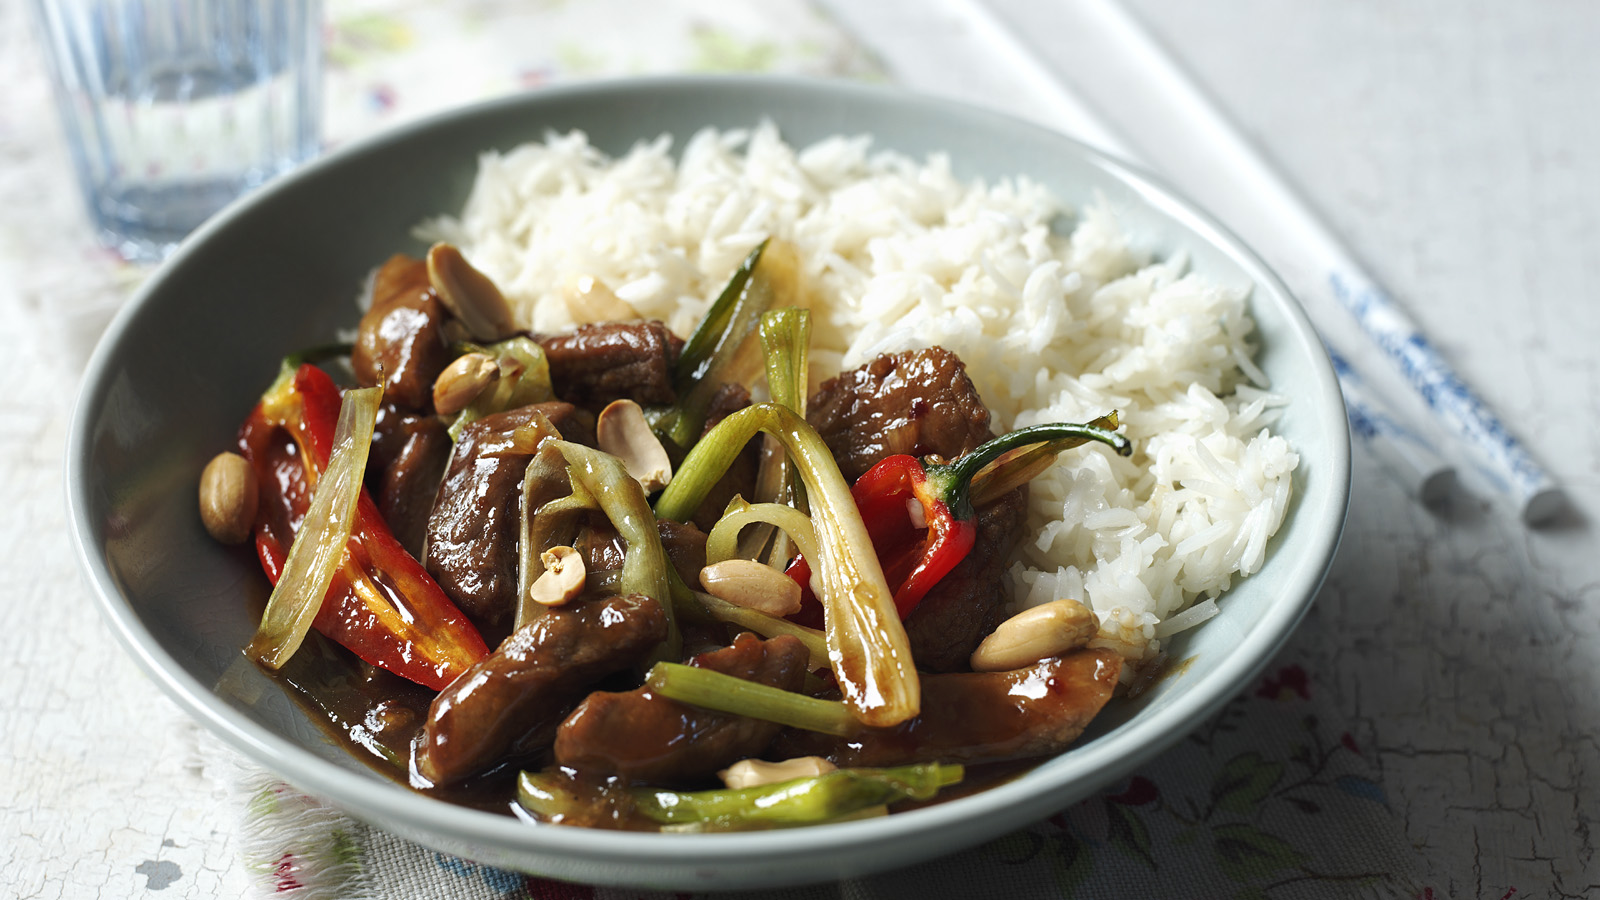 Stir fried chilli pork recipe bbc food forumfinder Gallery